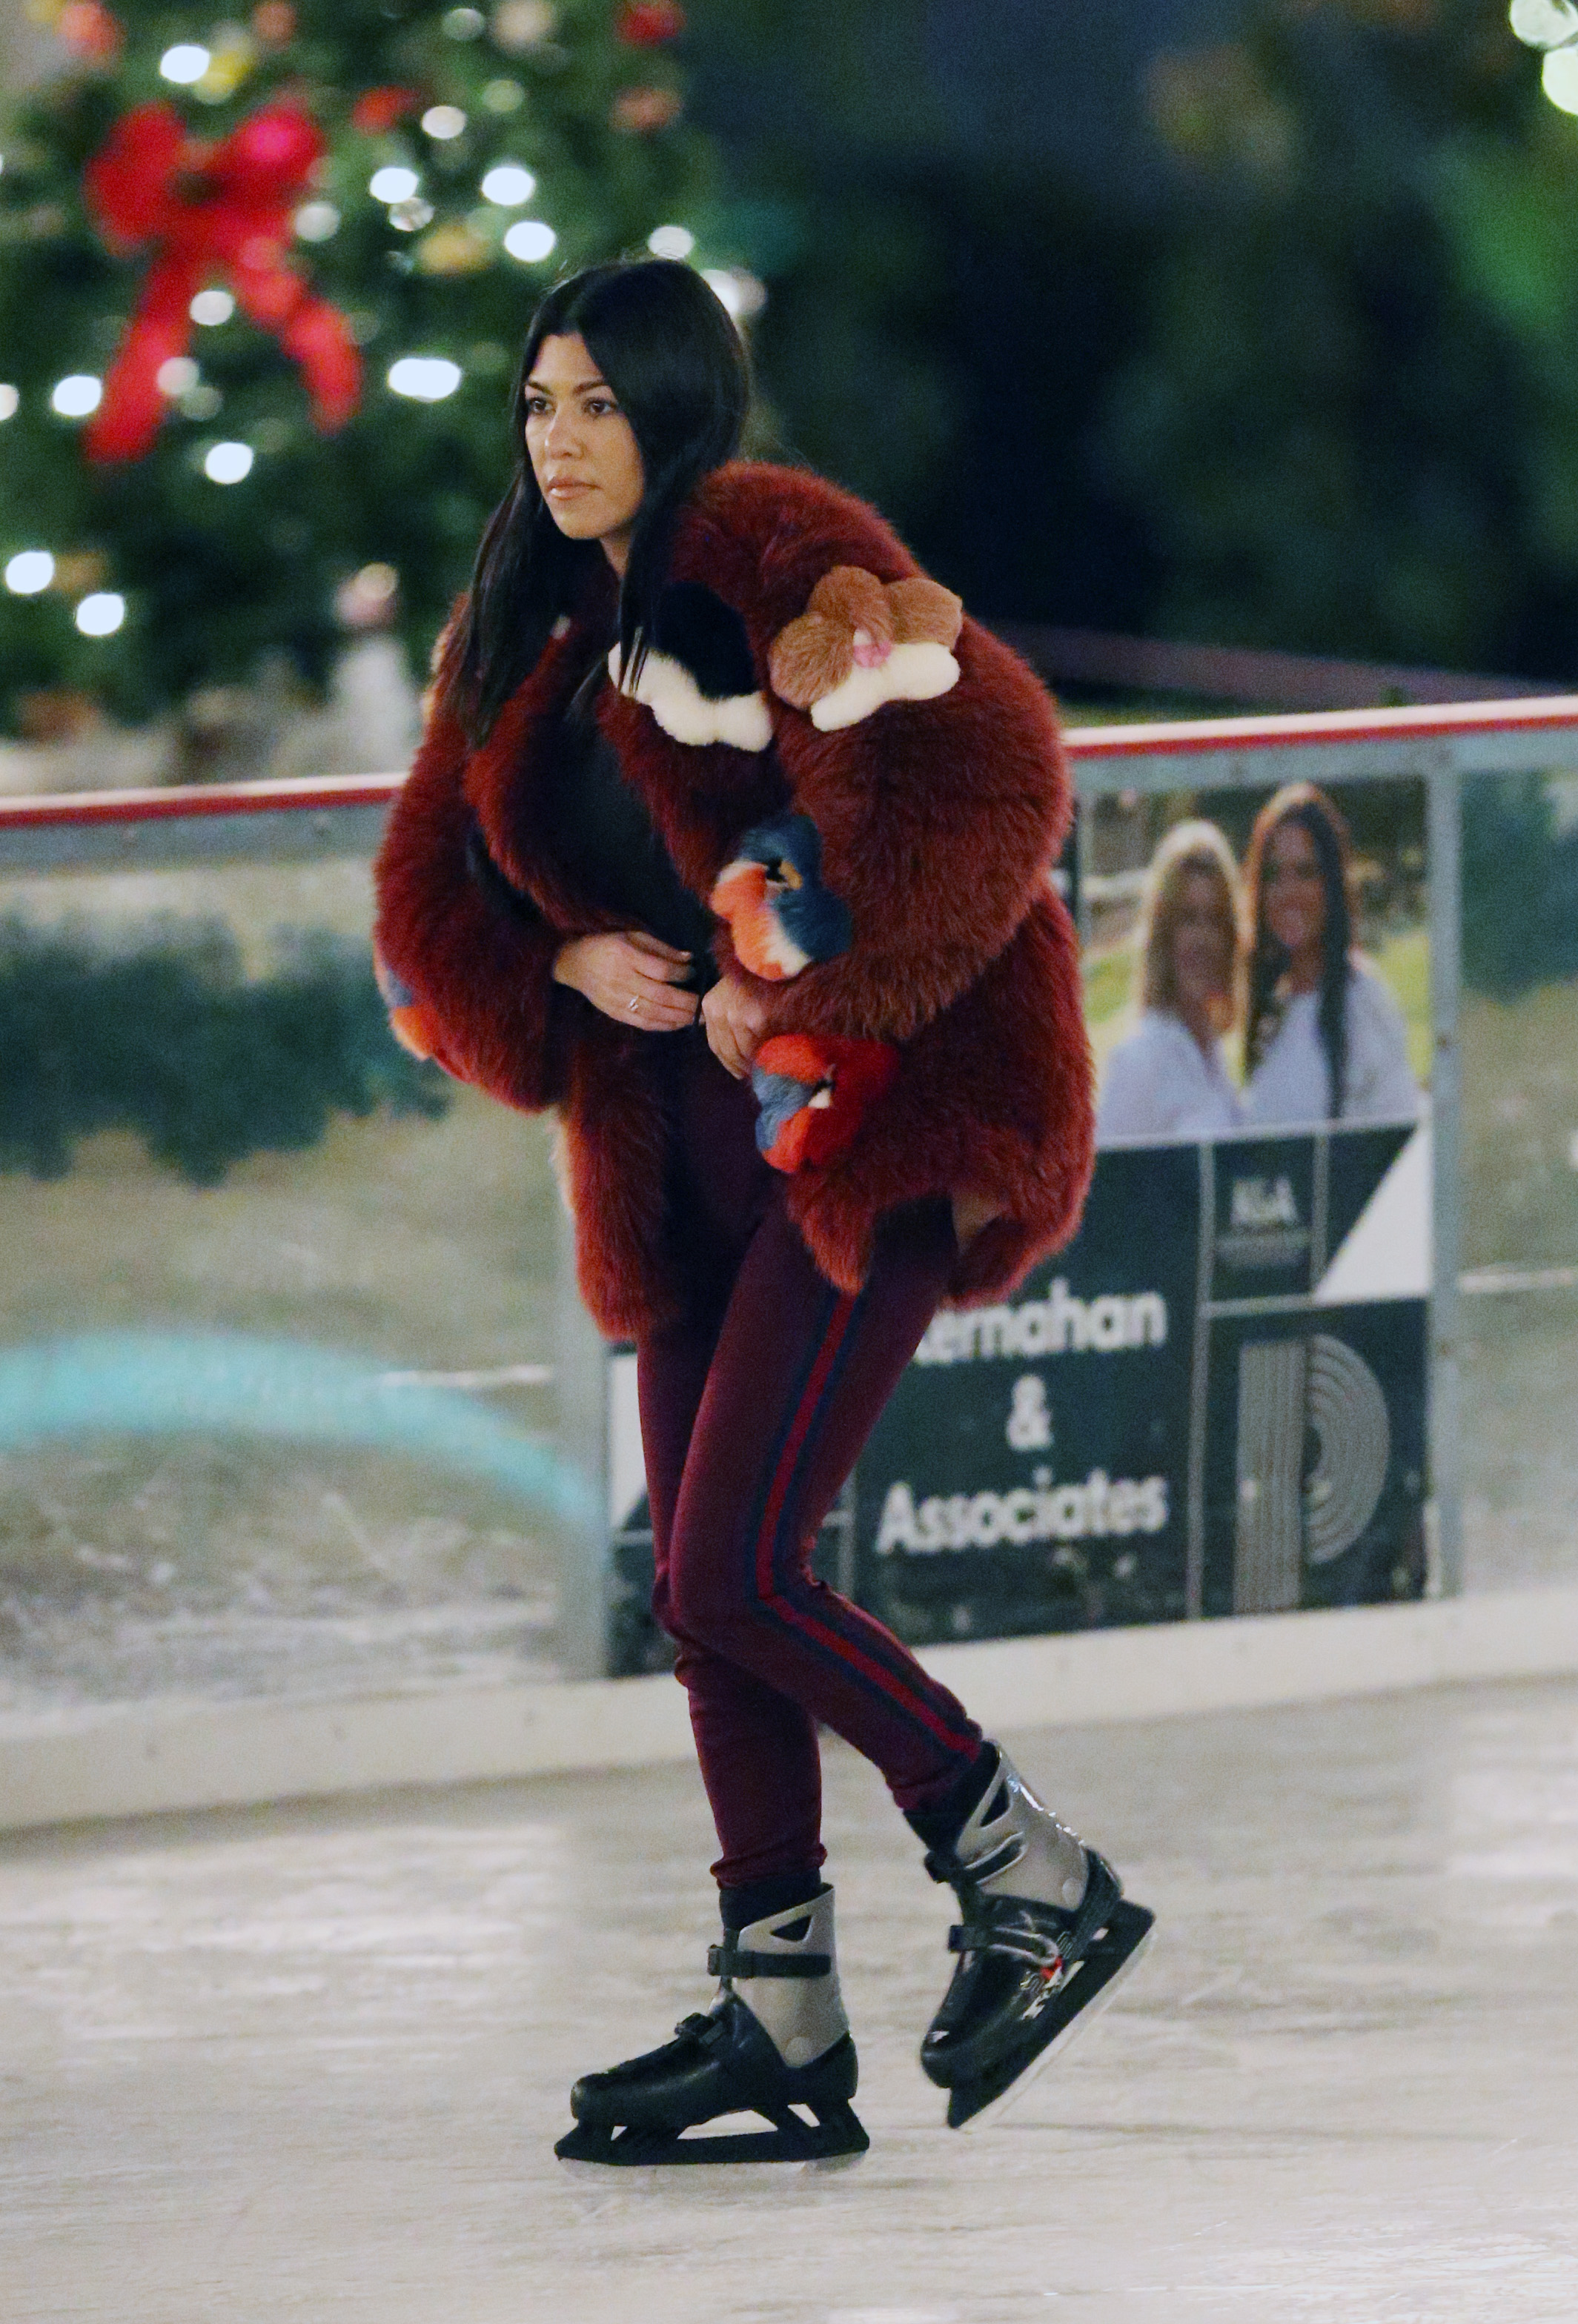 Kourtney Kardashian and boyfriend Younes Bendjima ice skating with Penelope and North at a christmas party in Thousand Oaks <P> Pictured: Kourtney Kardashian and Younes Bendjima,Penelope and North  <B>Ref: SPL1640275  231217  </B><BR/> Picture by: Brewer / Prahl / Splash News<BR/> </P><P> <B>Splash News and Pictures</B><BR/> Los Angeles:310-821-2666<BR/> New York:212-619-2666<BR/> London:870-934-2666<BR/> <span id=